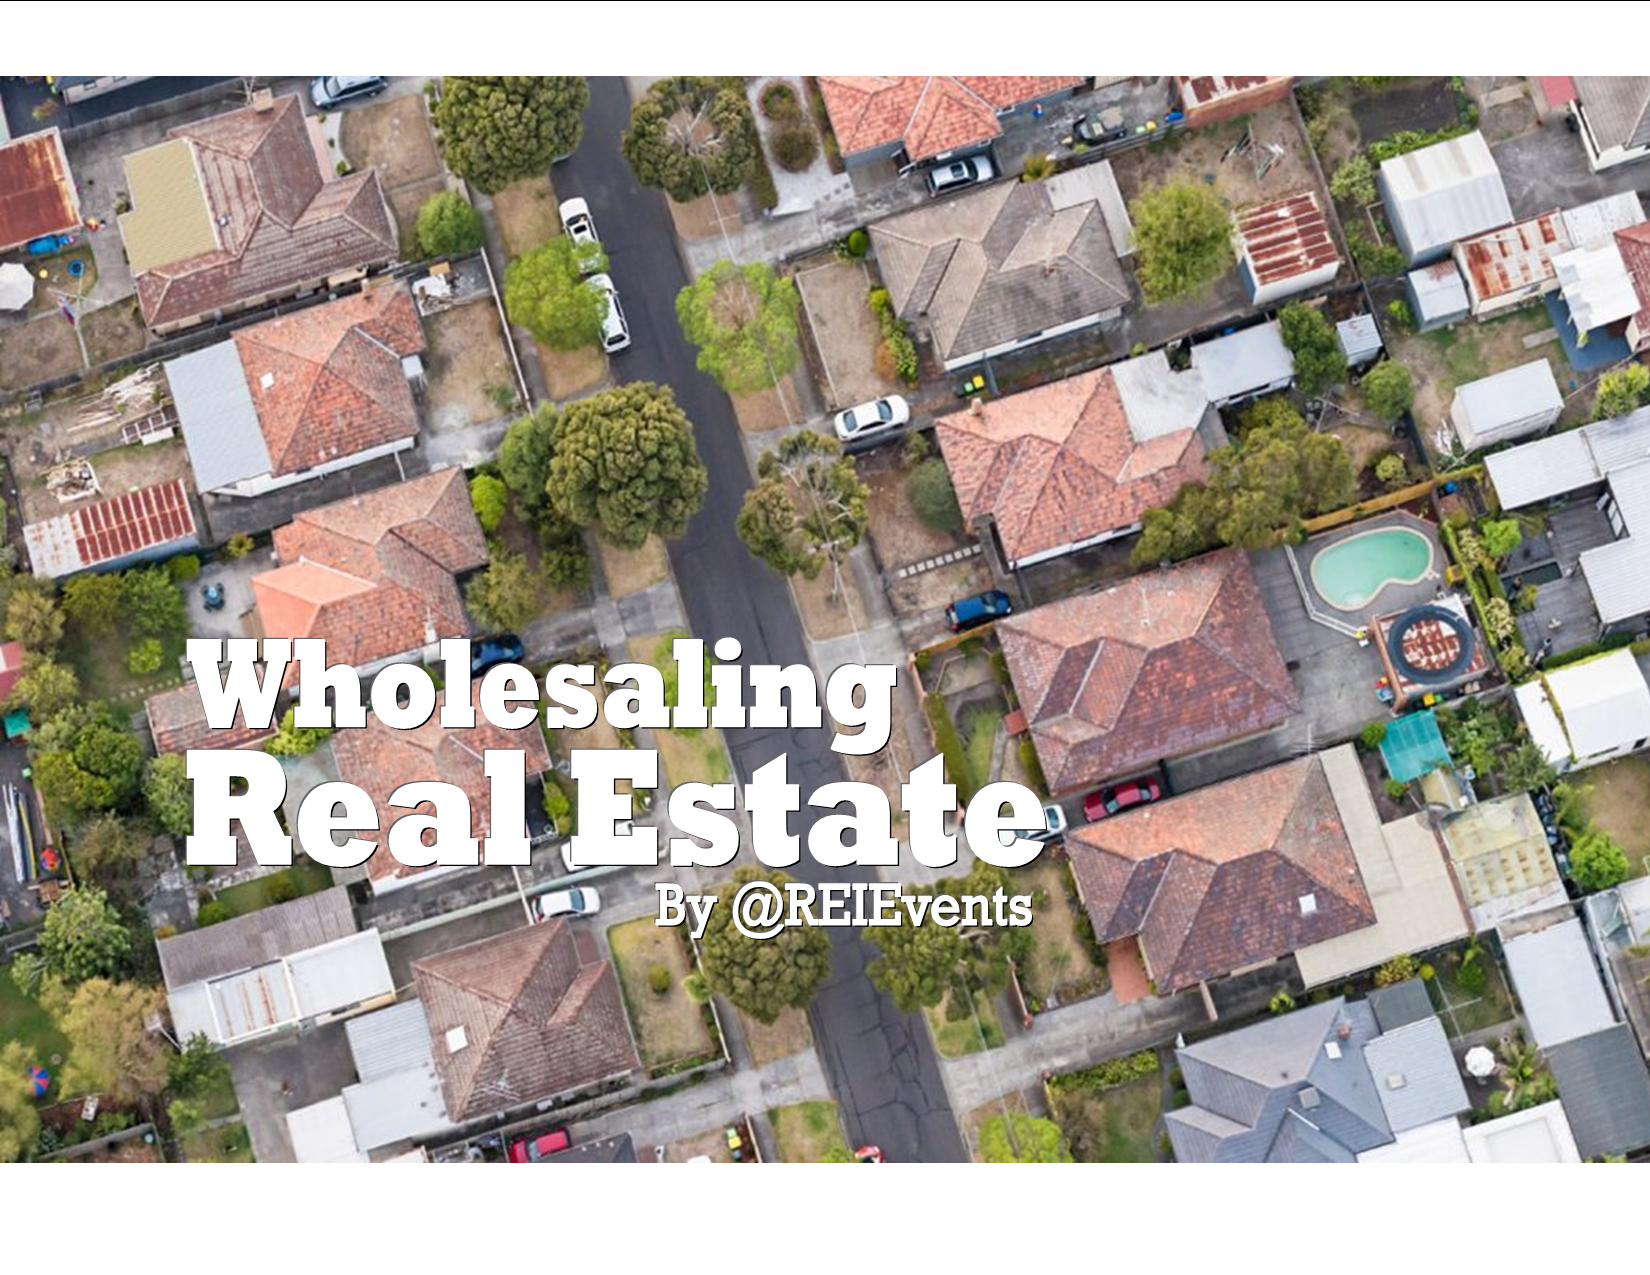 How To Start Wholesaling Real Estate - Los Angeles, CA